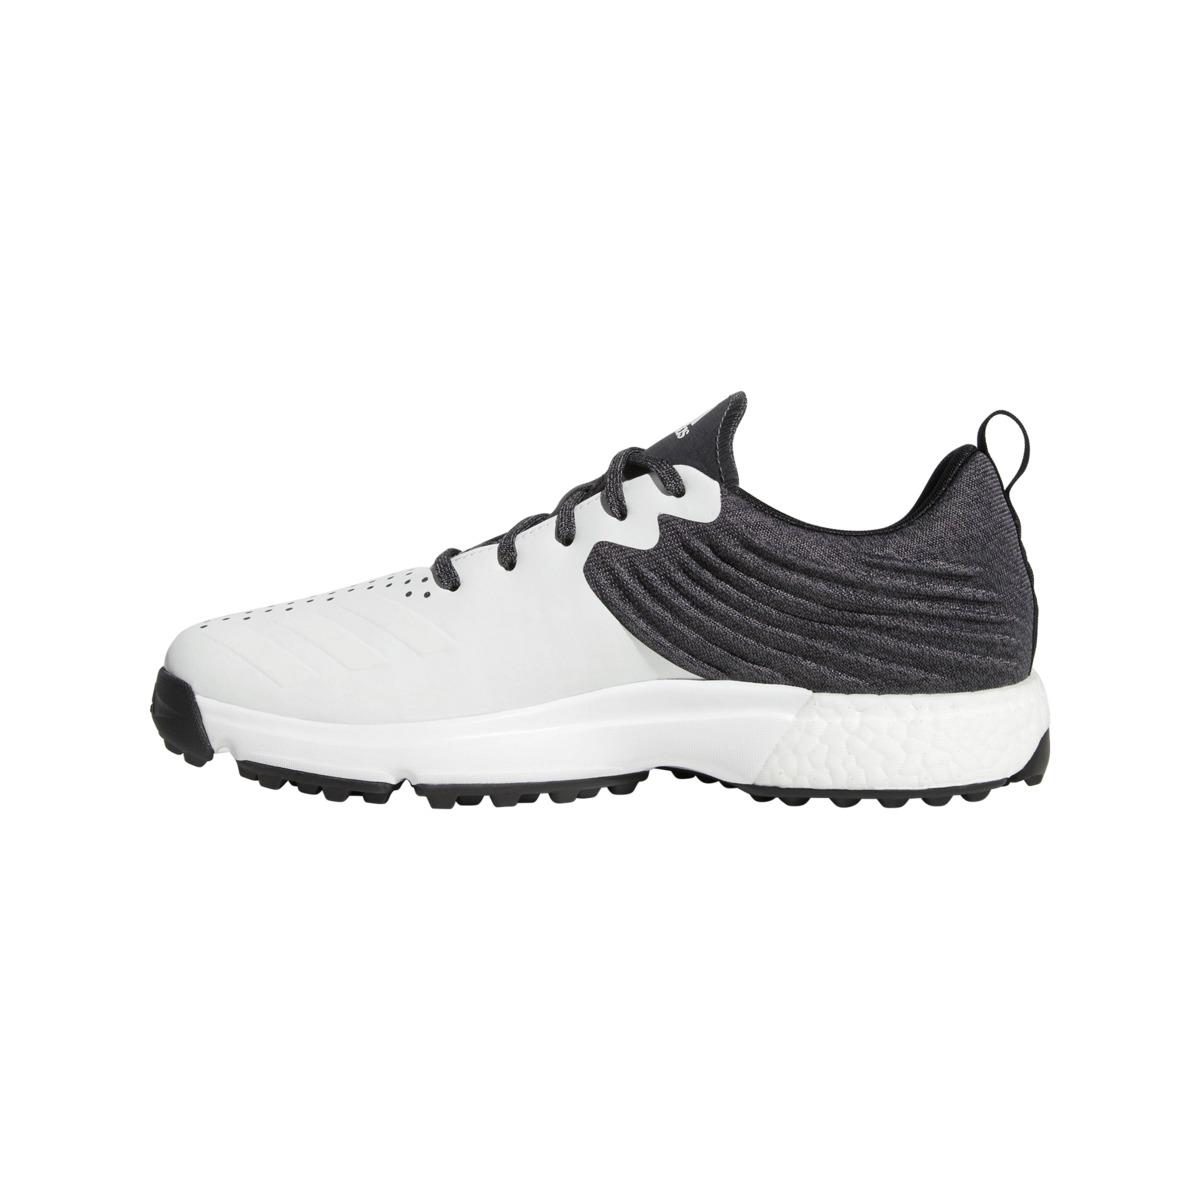 Lyst - adidas Adipower 4orged Golf Shoes in Black for Men b3569016c